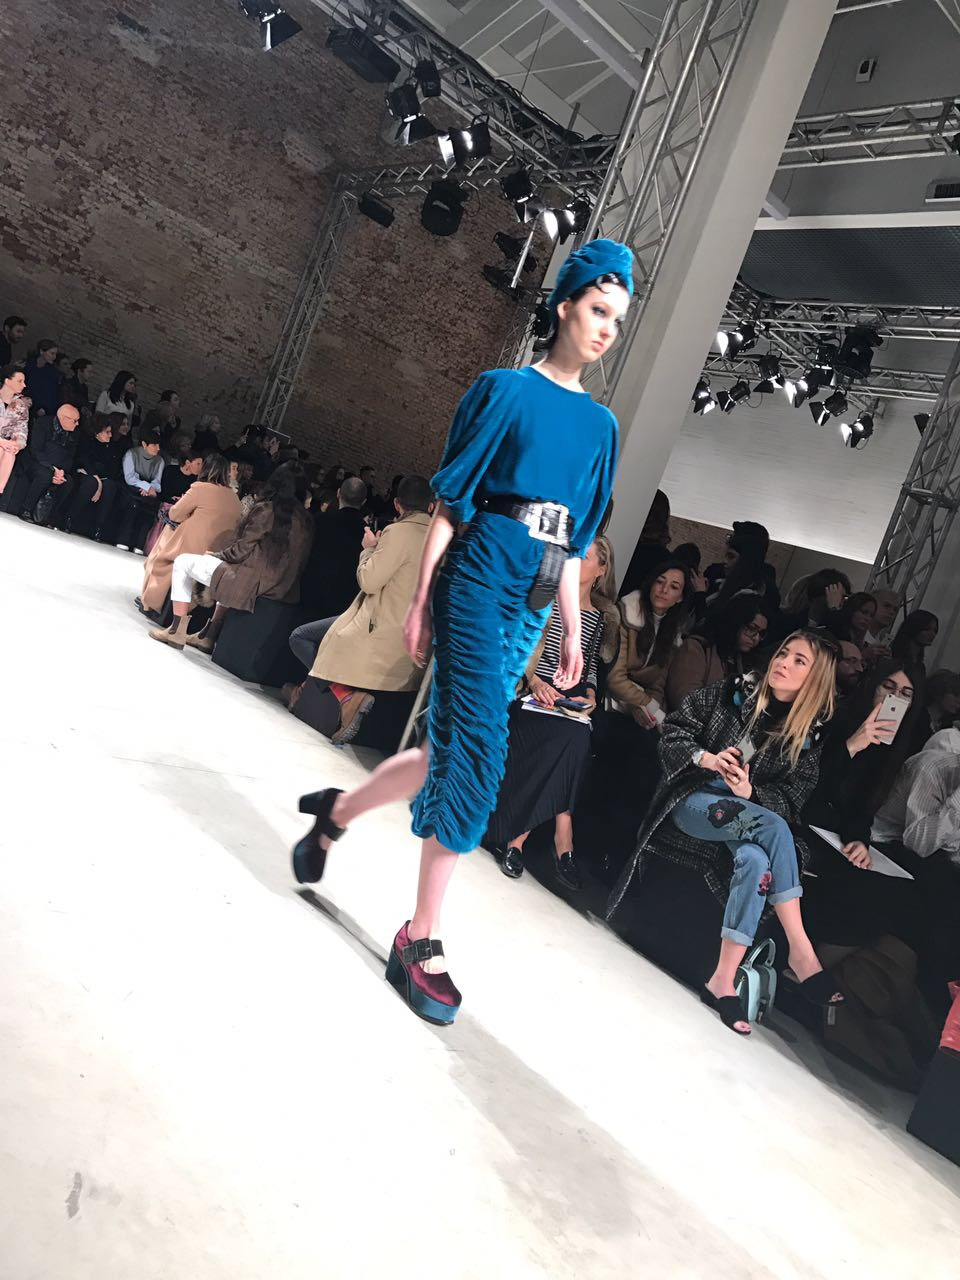 Antonio Marras - Velvet is still going strong and turbans have become a fashion staple this season.